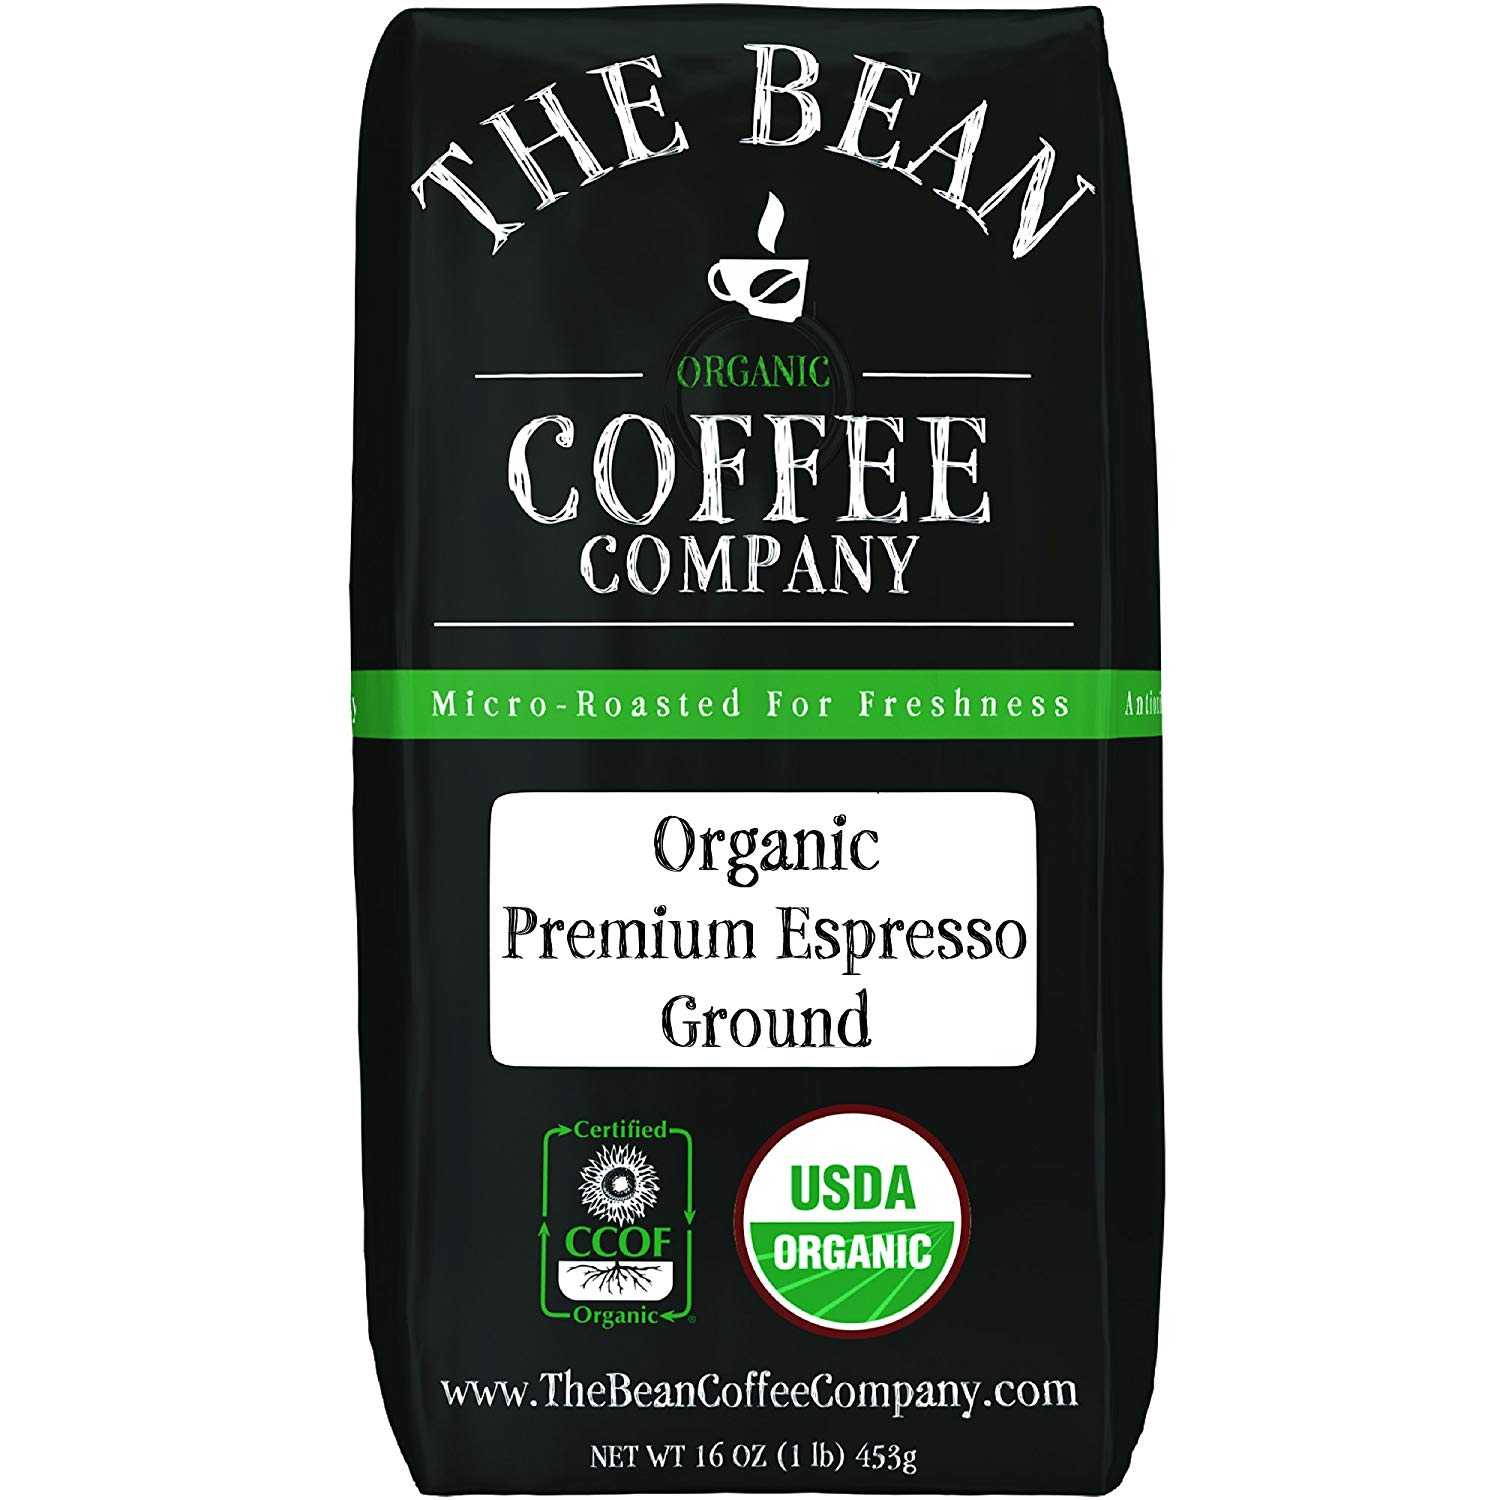 The Bean Coffee Company Organic Premium Espresso, Dark Roast, Ground, 16-Ounce Bag